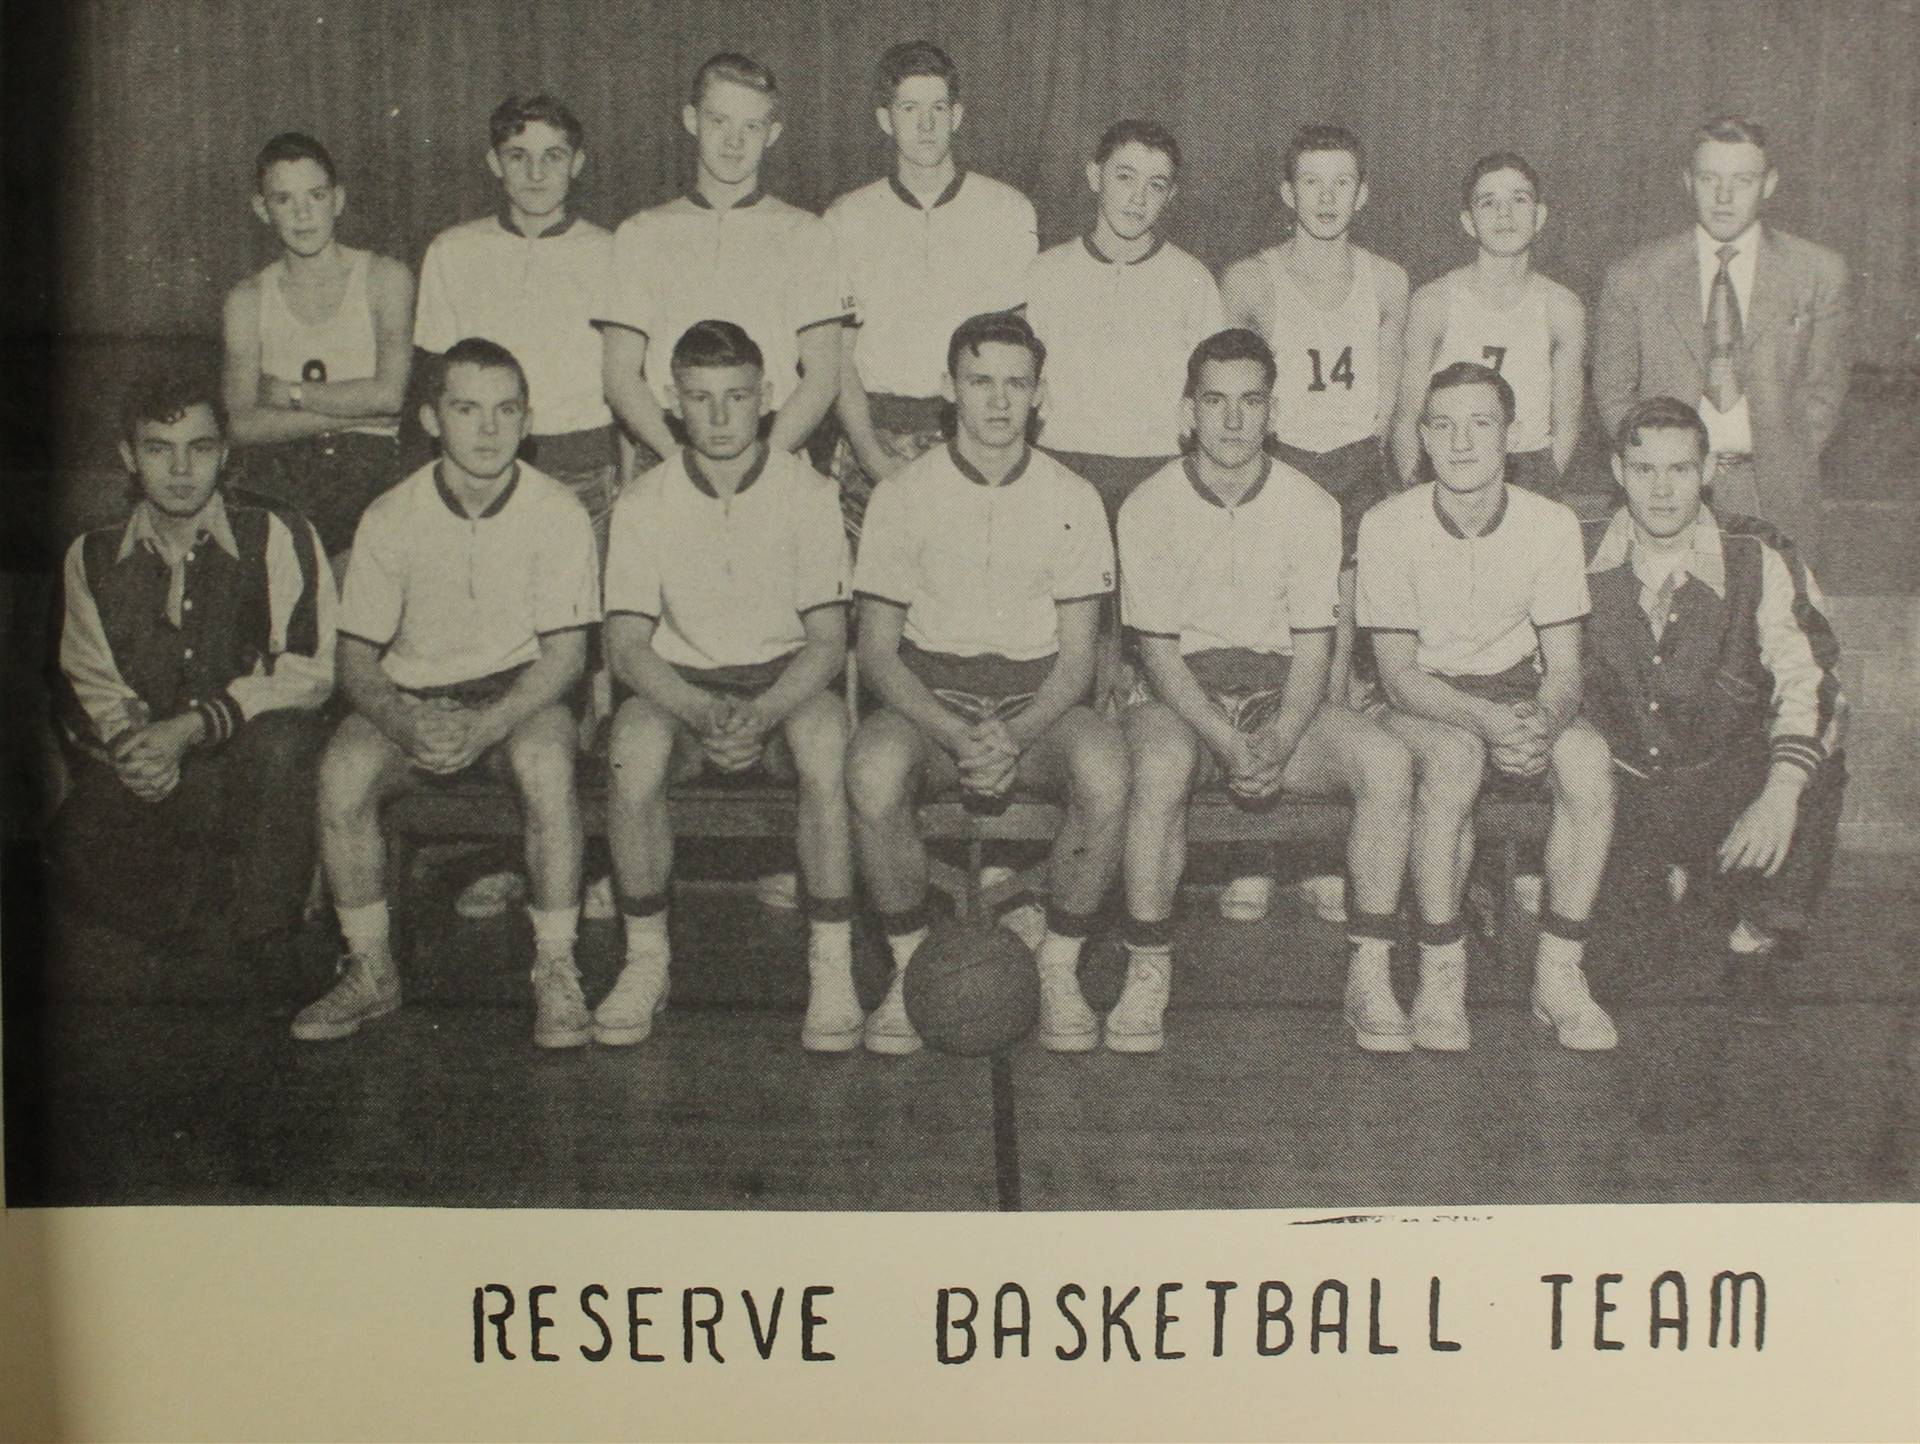 1953 reserve basketball team